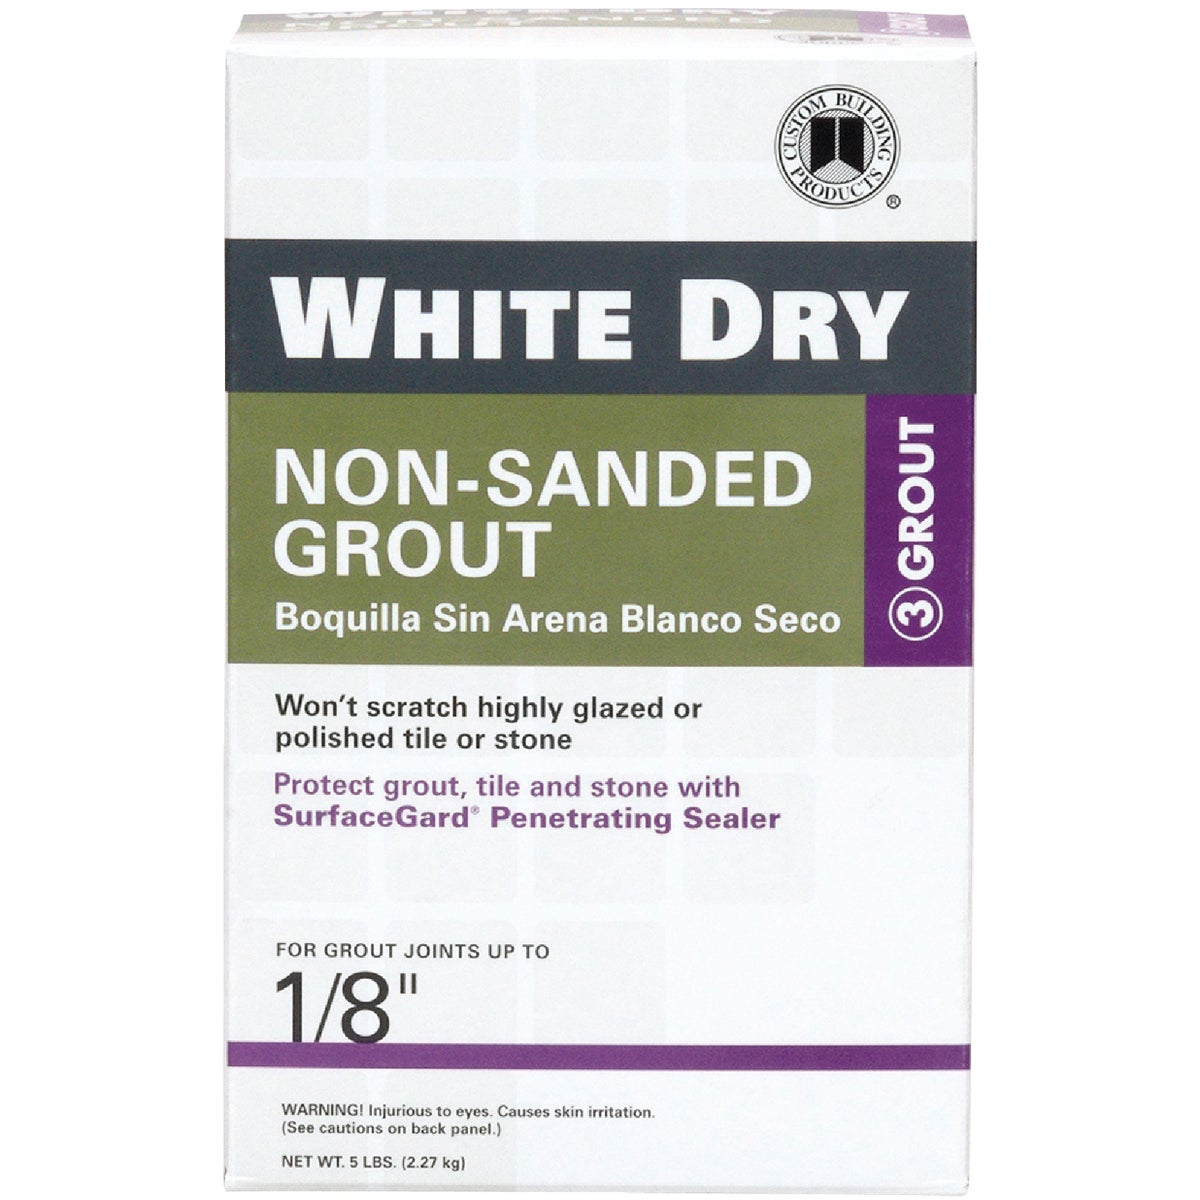 5LB WHITE TILE GROUT - WDG5-4 by Custom Building Prod